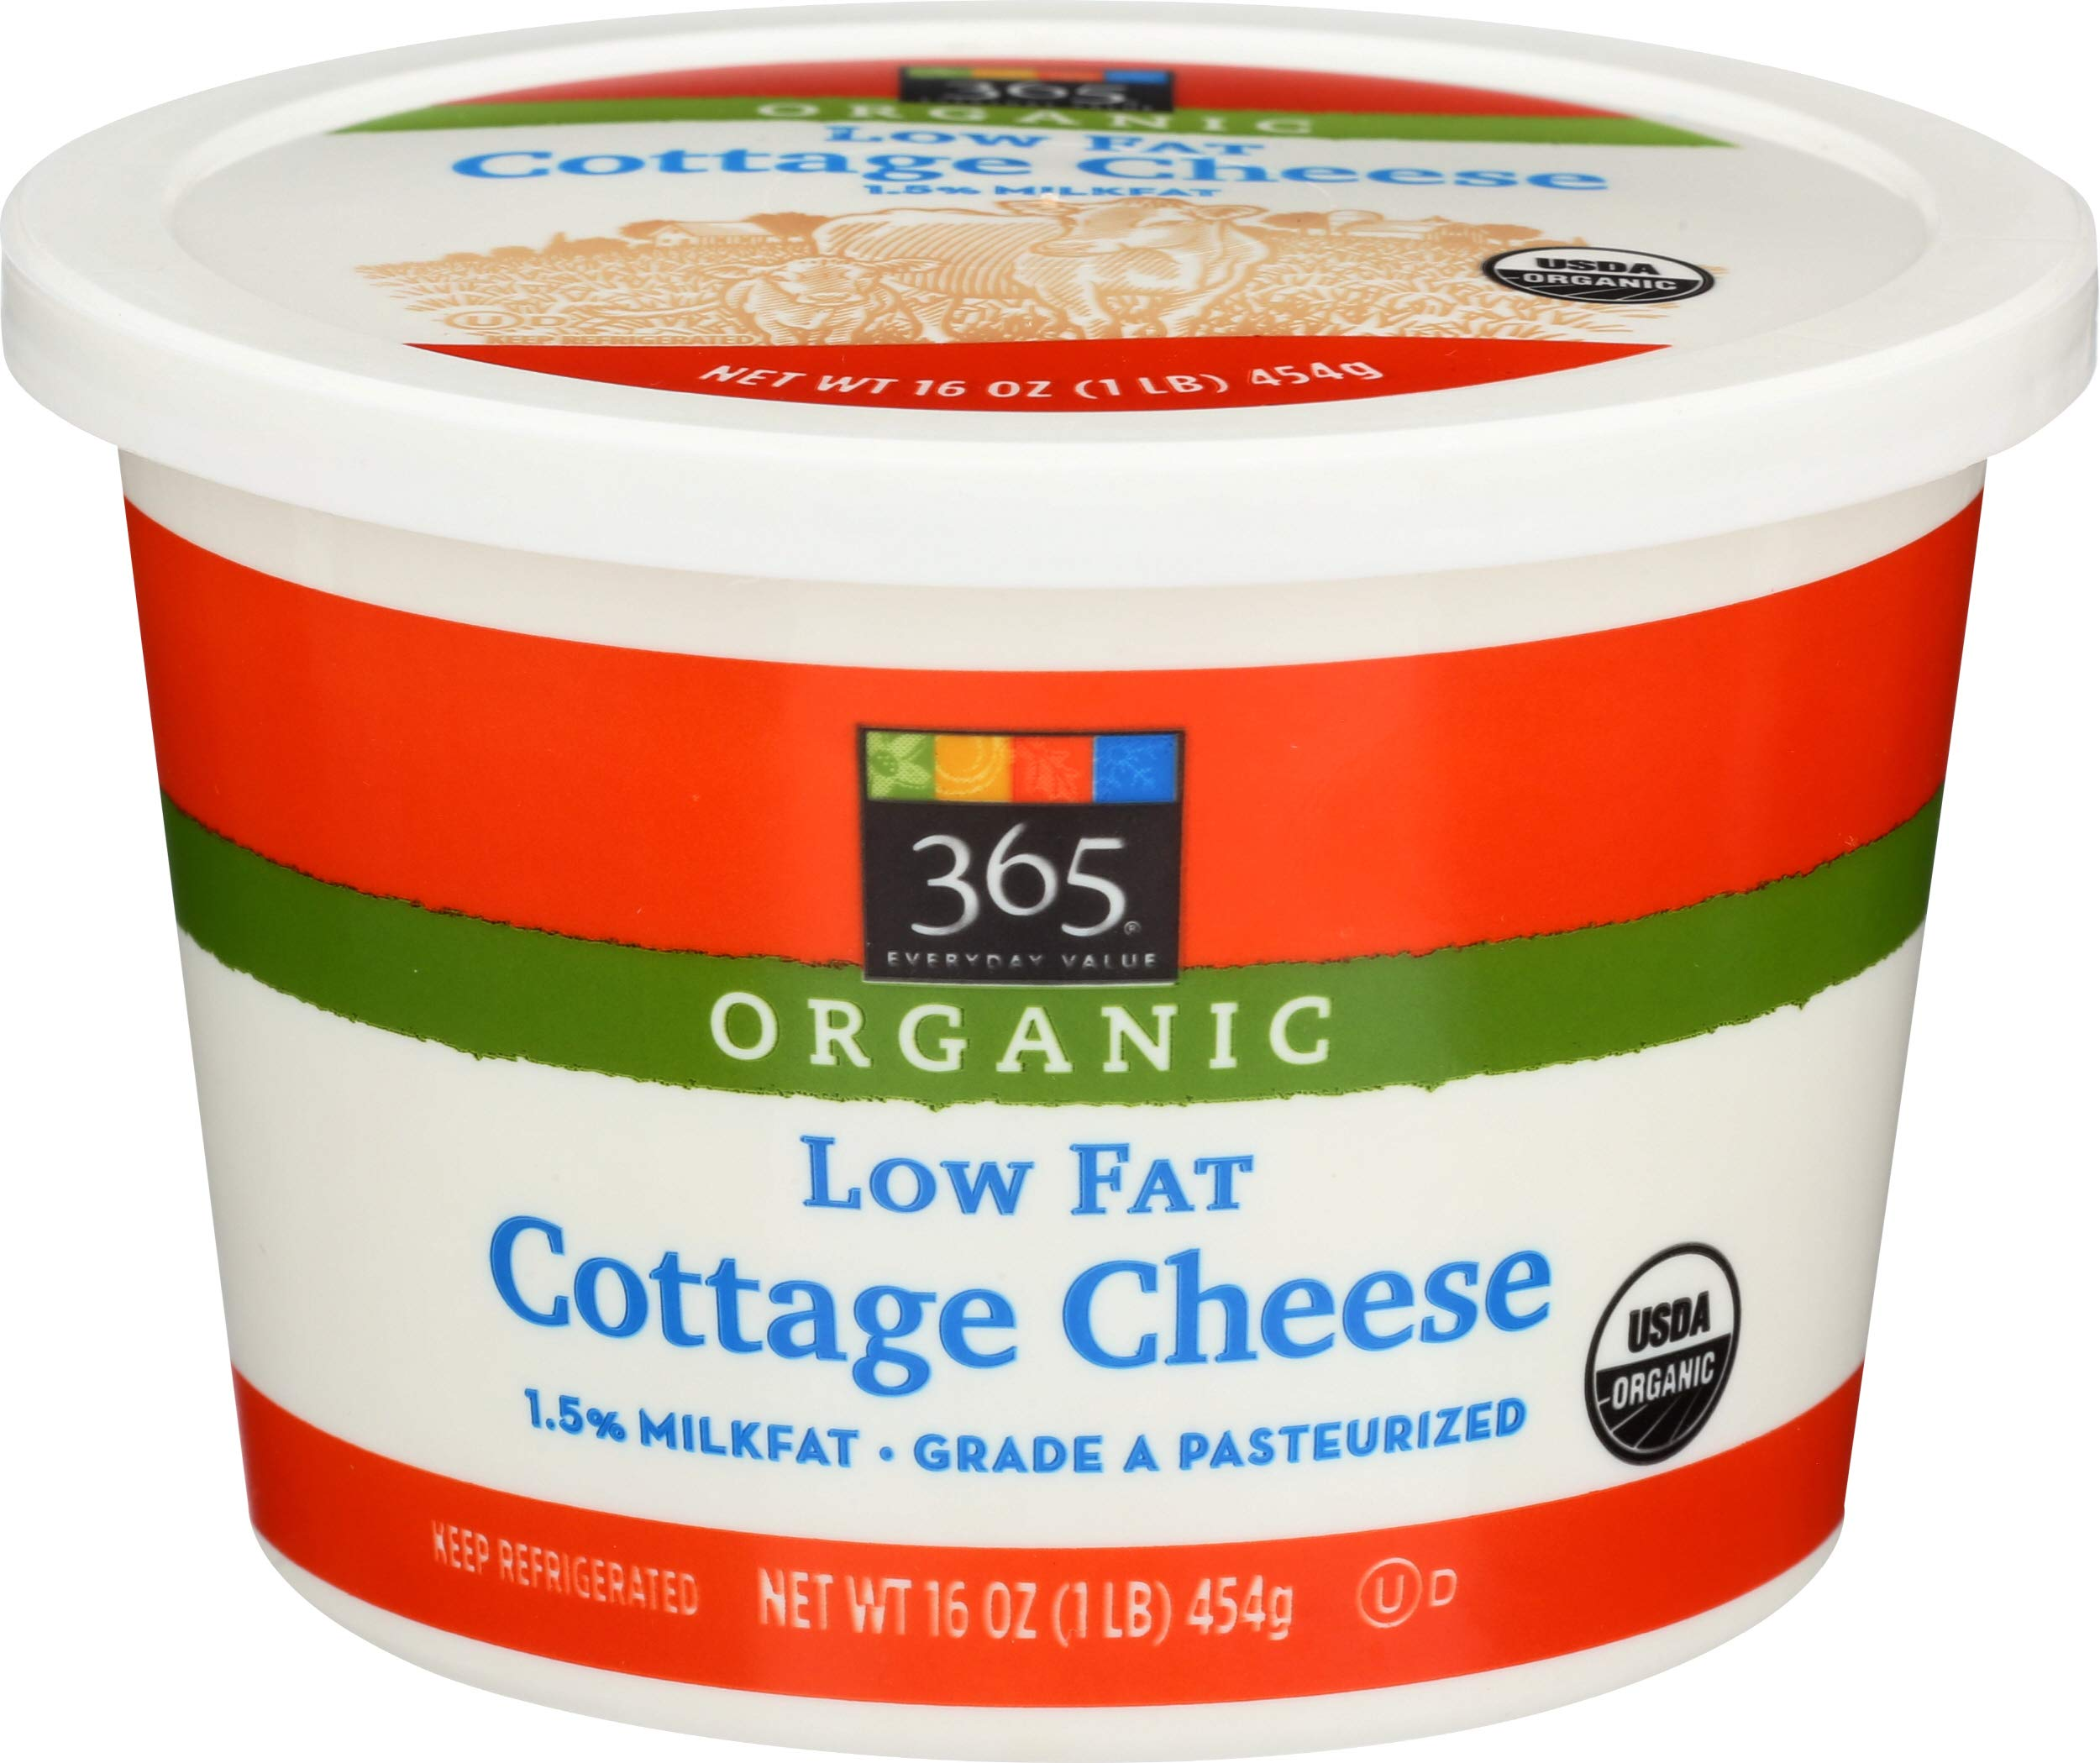 365 Everyday Value, Organic Low Fat Cottage Cheese, 16 oz